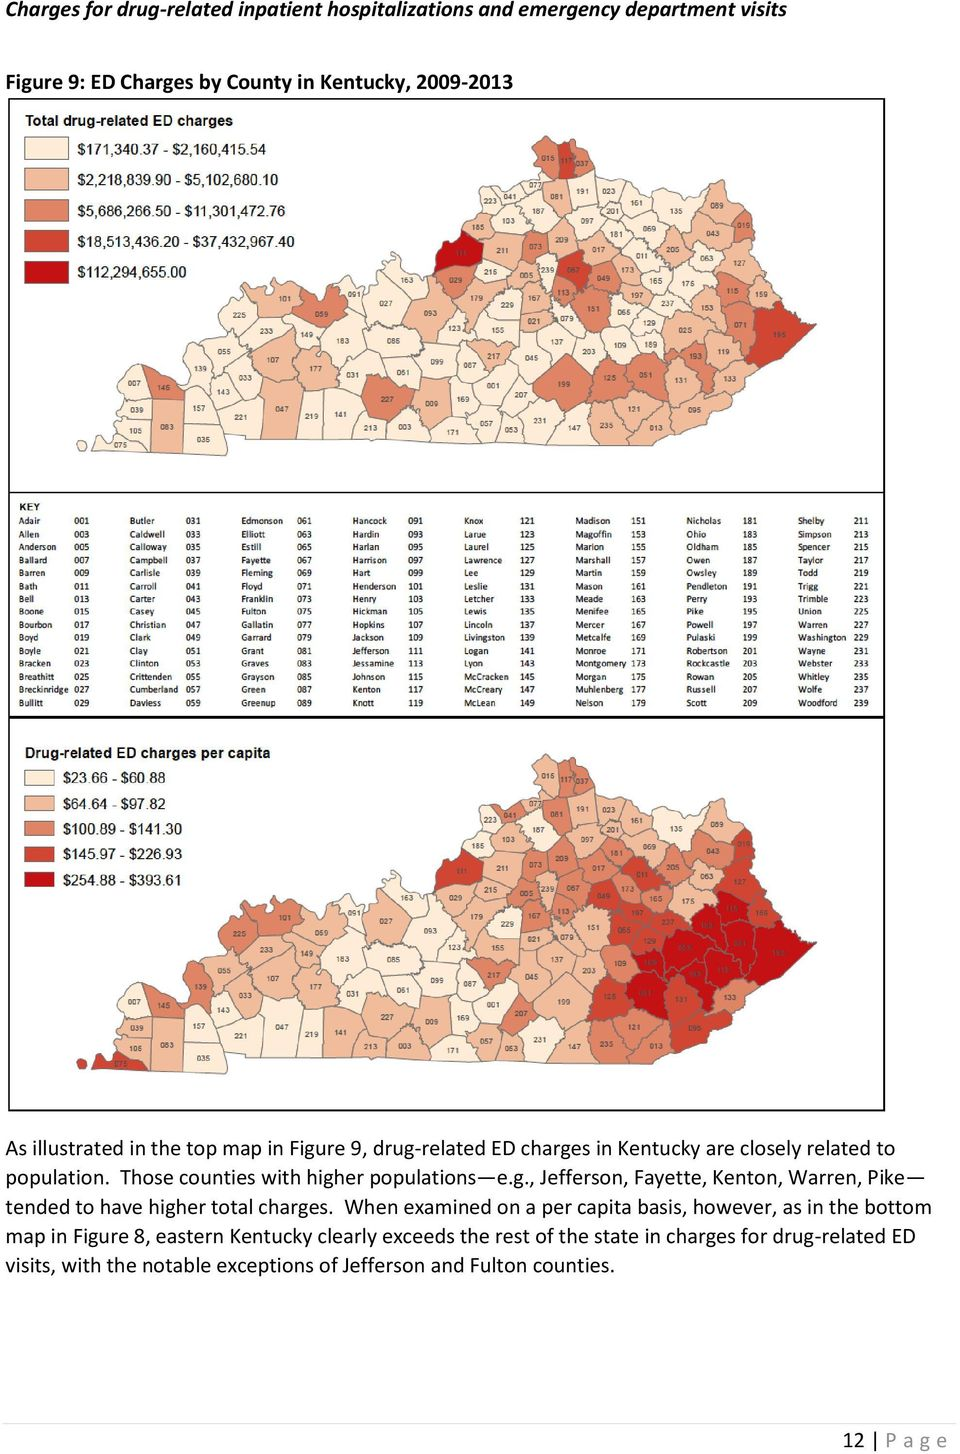 er populations e.g., Jefferson, Fayette, Kenton, Warren, Pike tended to have higher total charges.